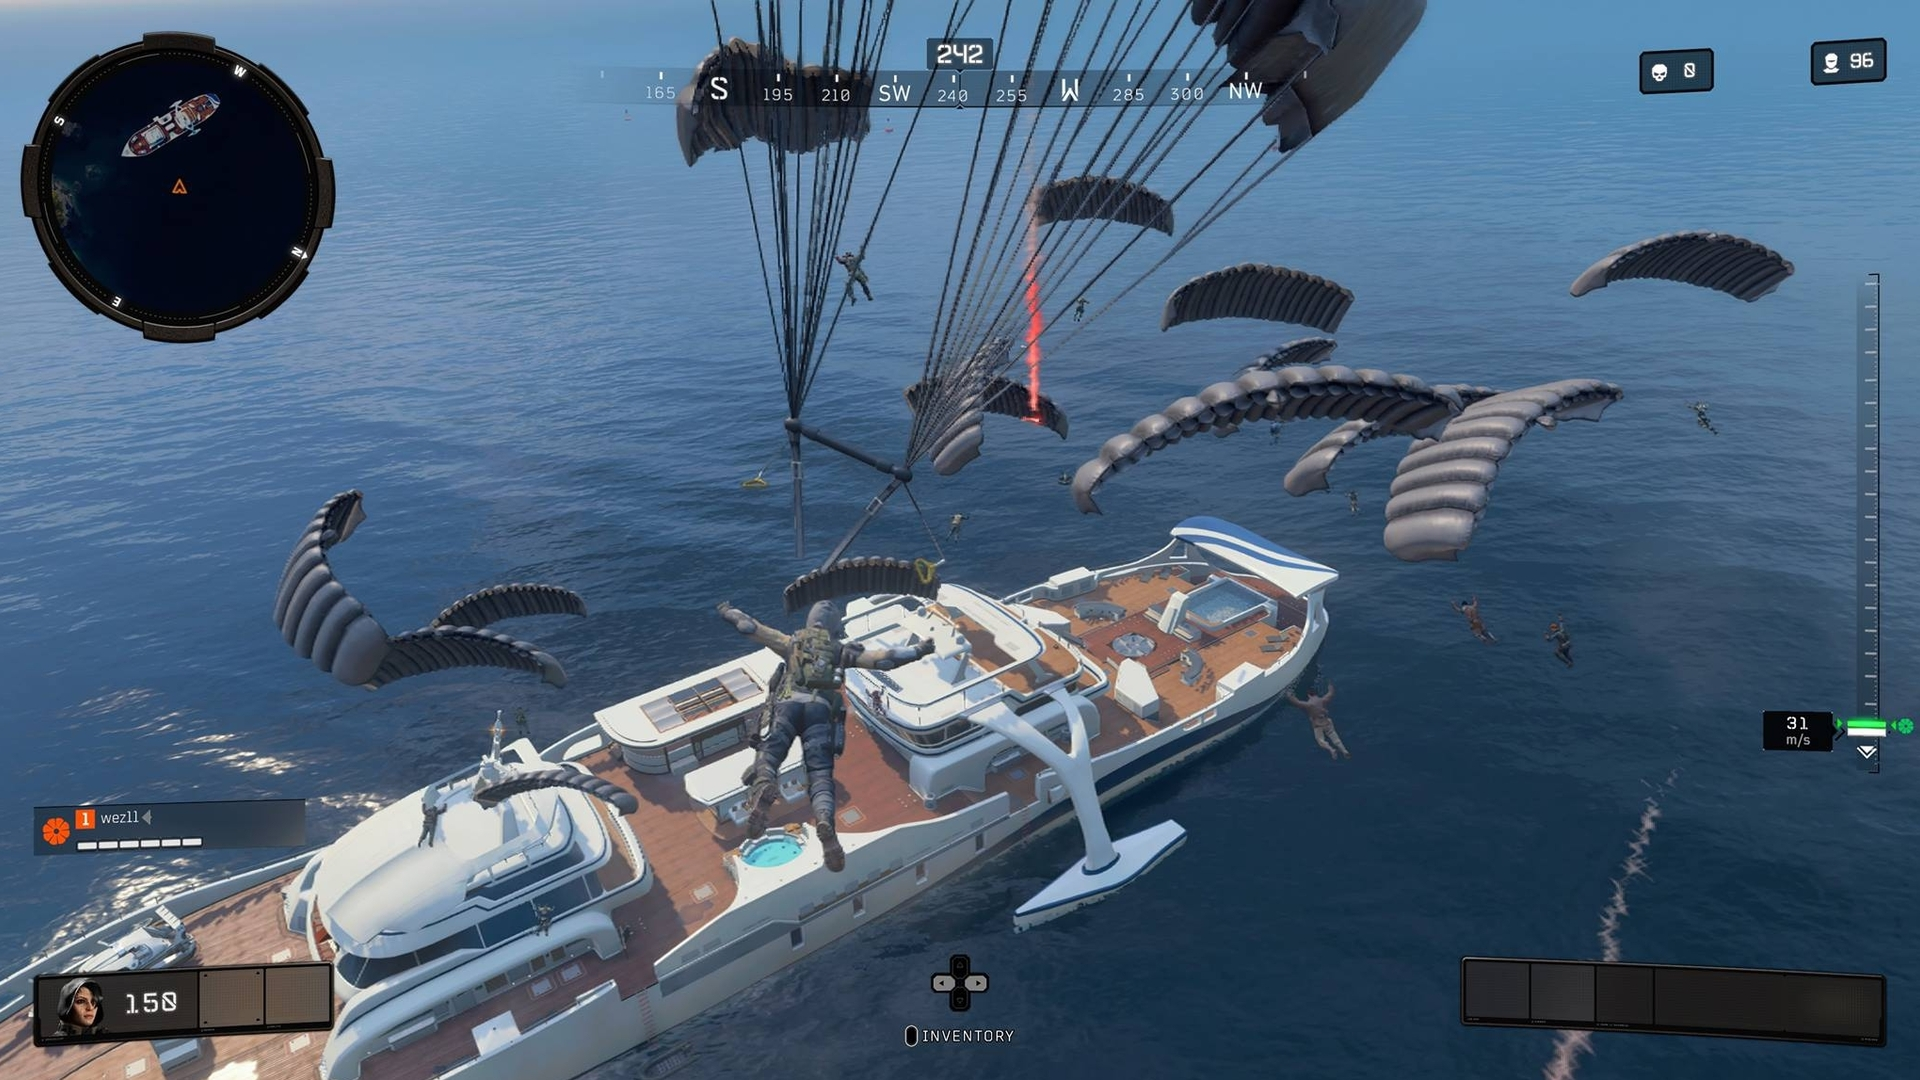 Call of Duty: Black Ops 4 just added Hijacked to Blackout - and it's absolute carnage